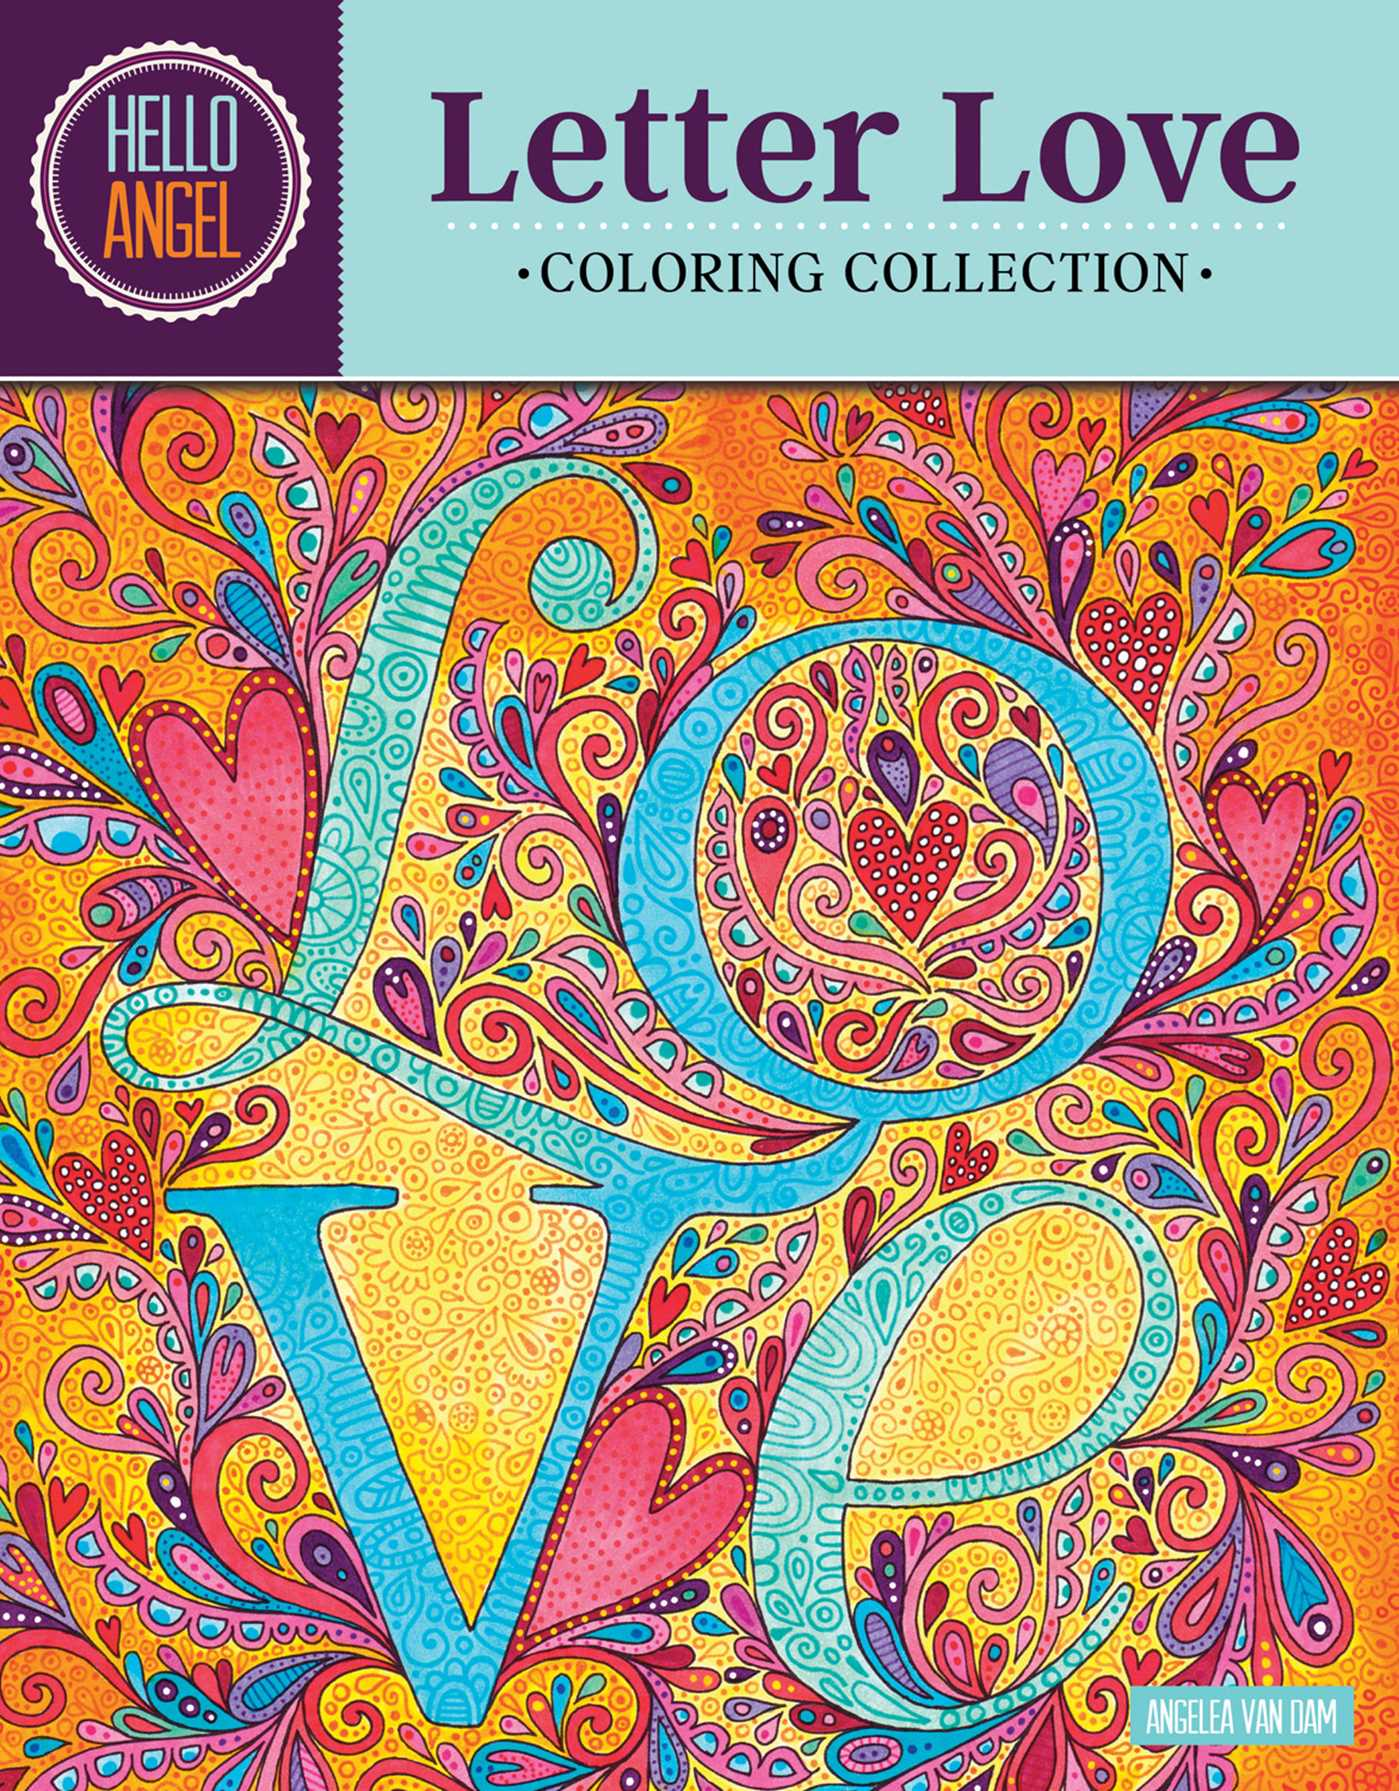 Book Cover Image Jpg Hello Angel Letter Love Coloring Collection